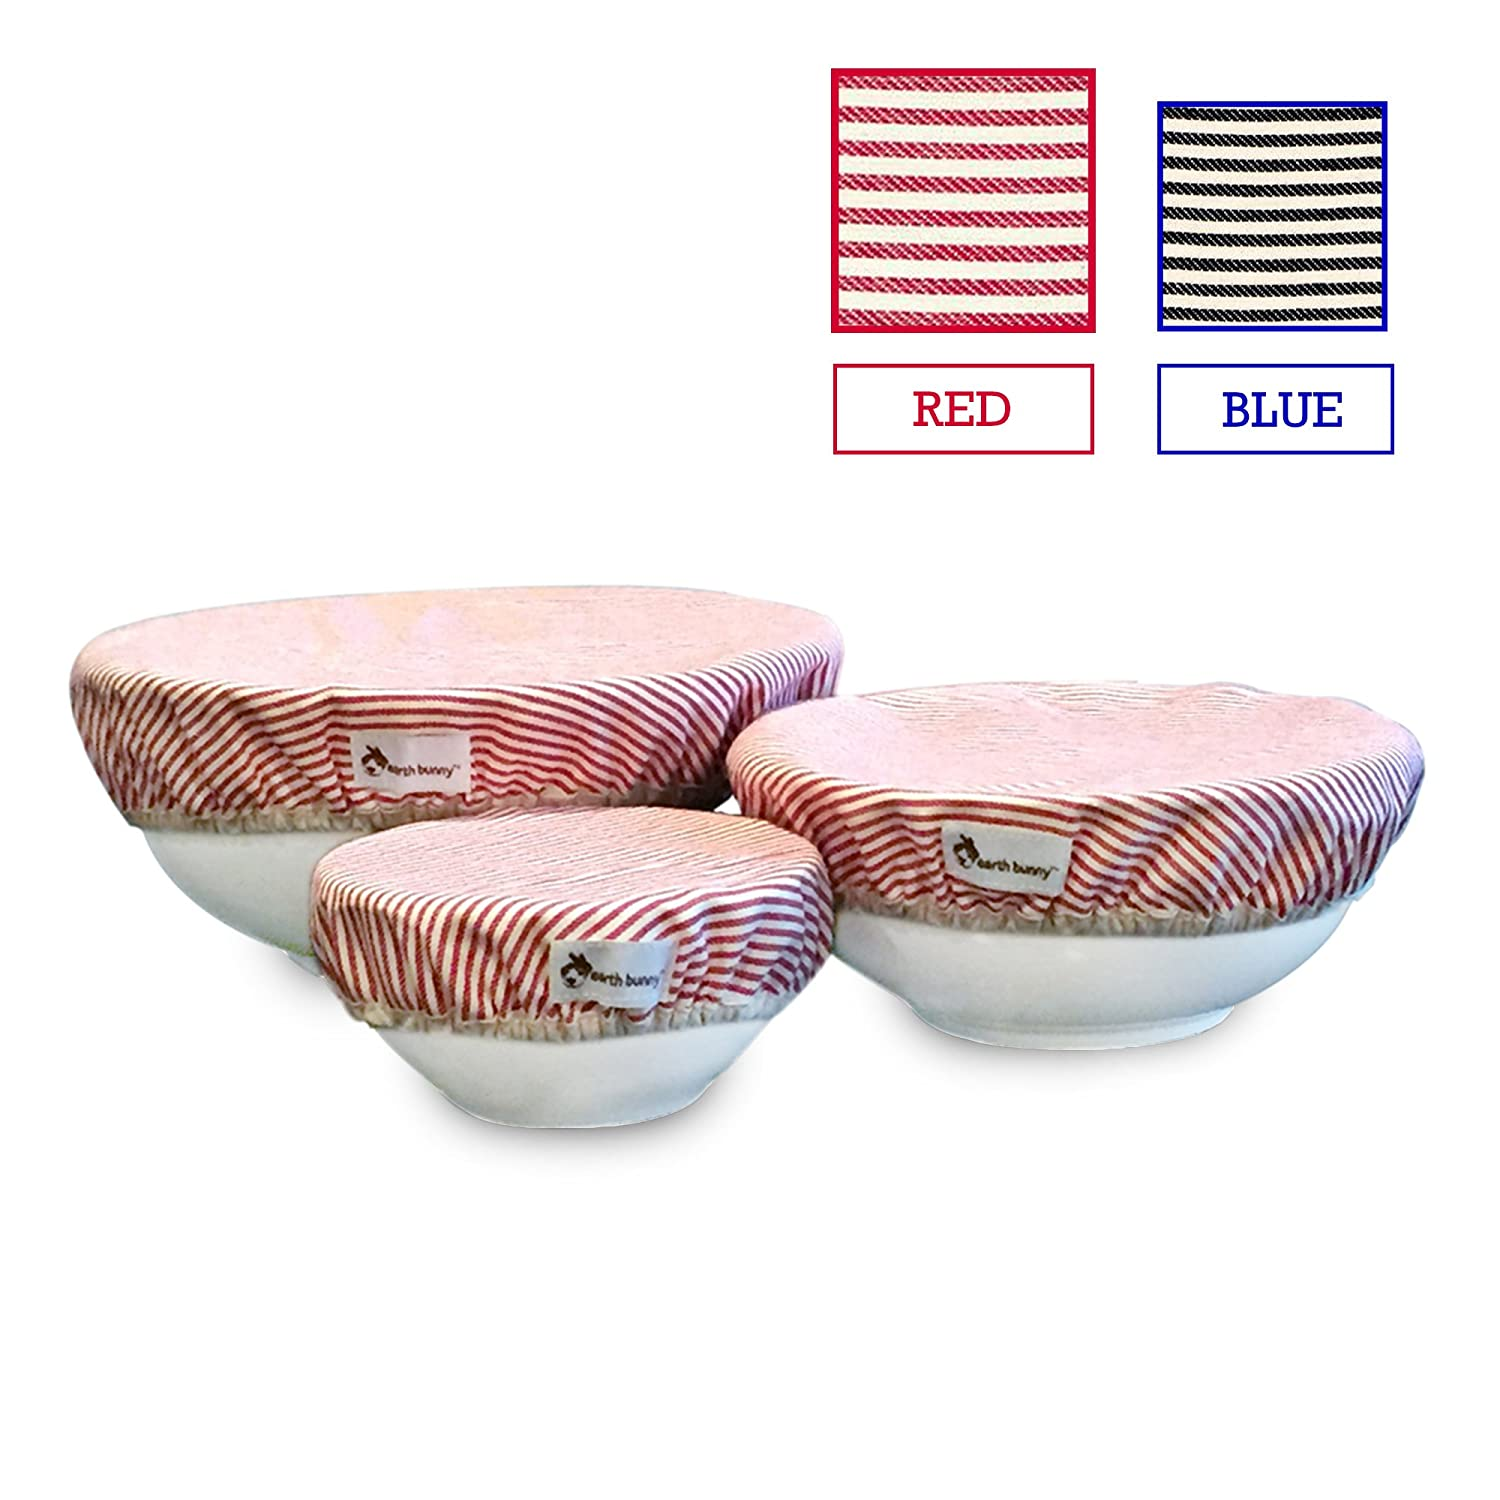 Earth Bunny Fabric Bowl Covers - Red Stripes | Set of 3 - Small, Medium, Large | 100% Cotton Cloth with Elastic Edging | Eco friendly, Washable and Reusable